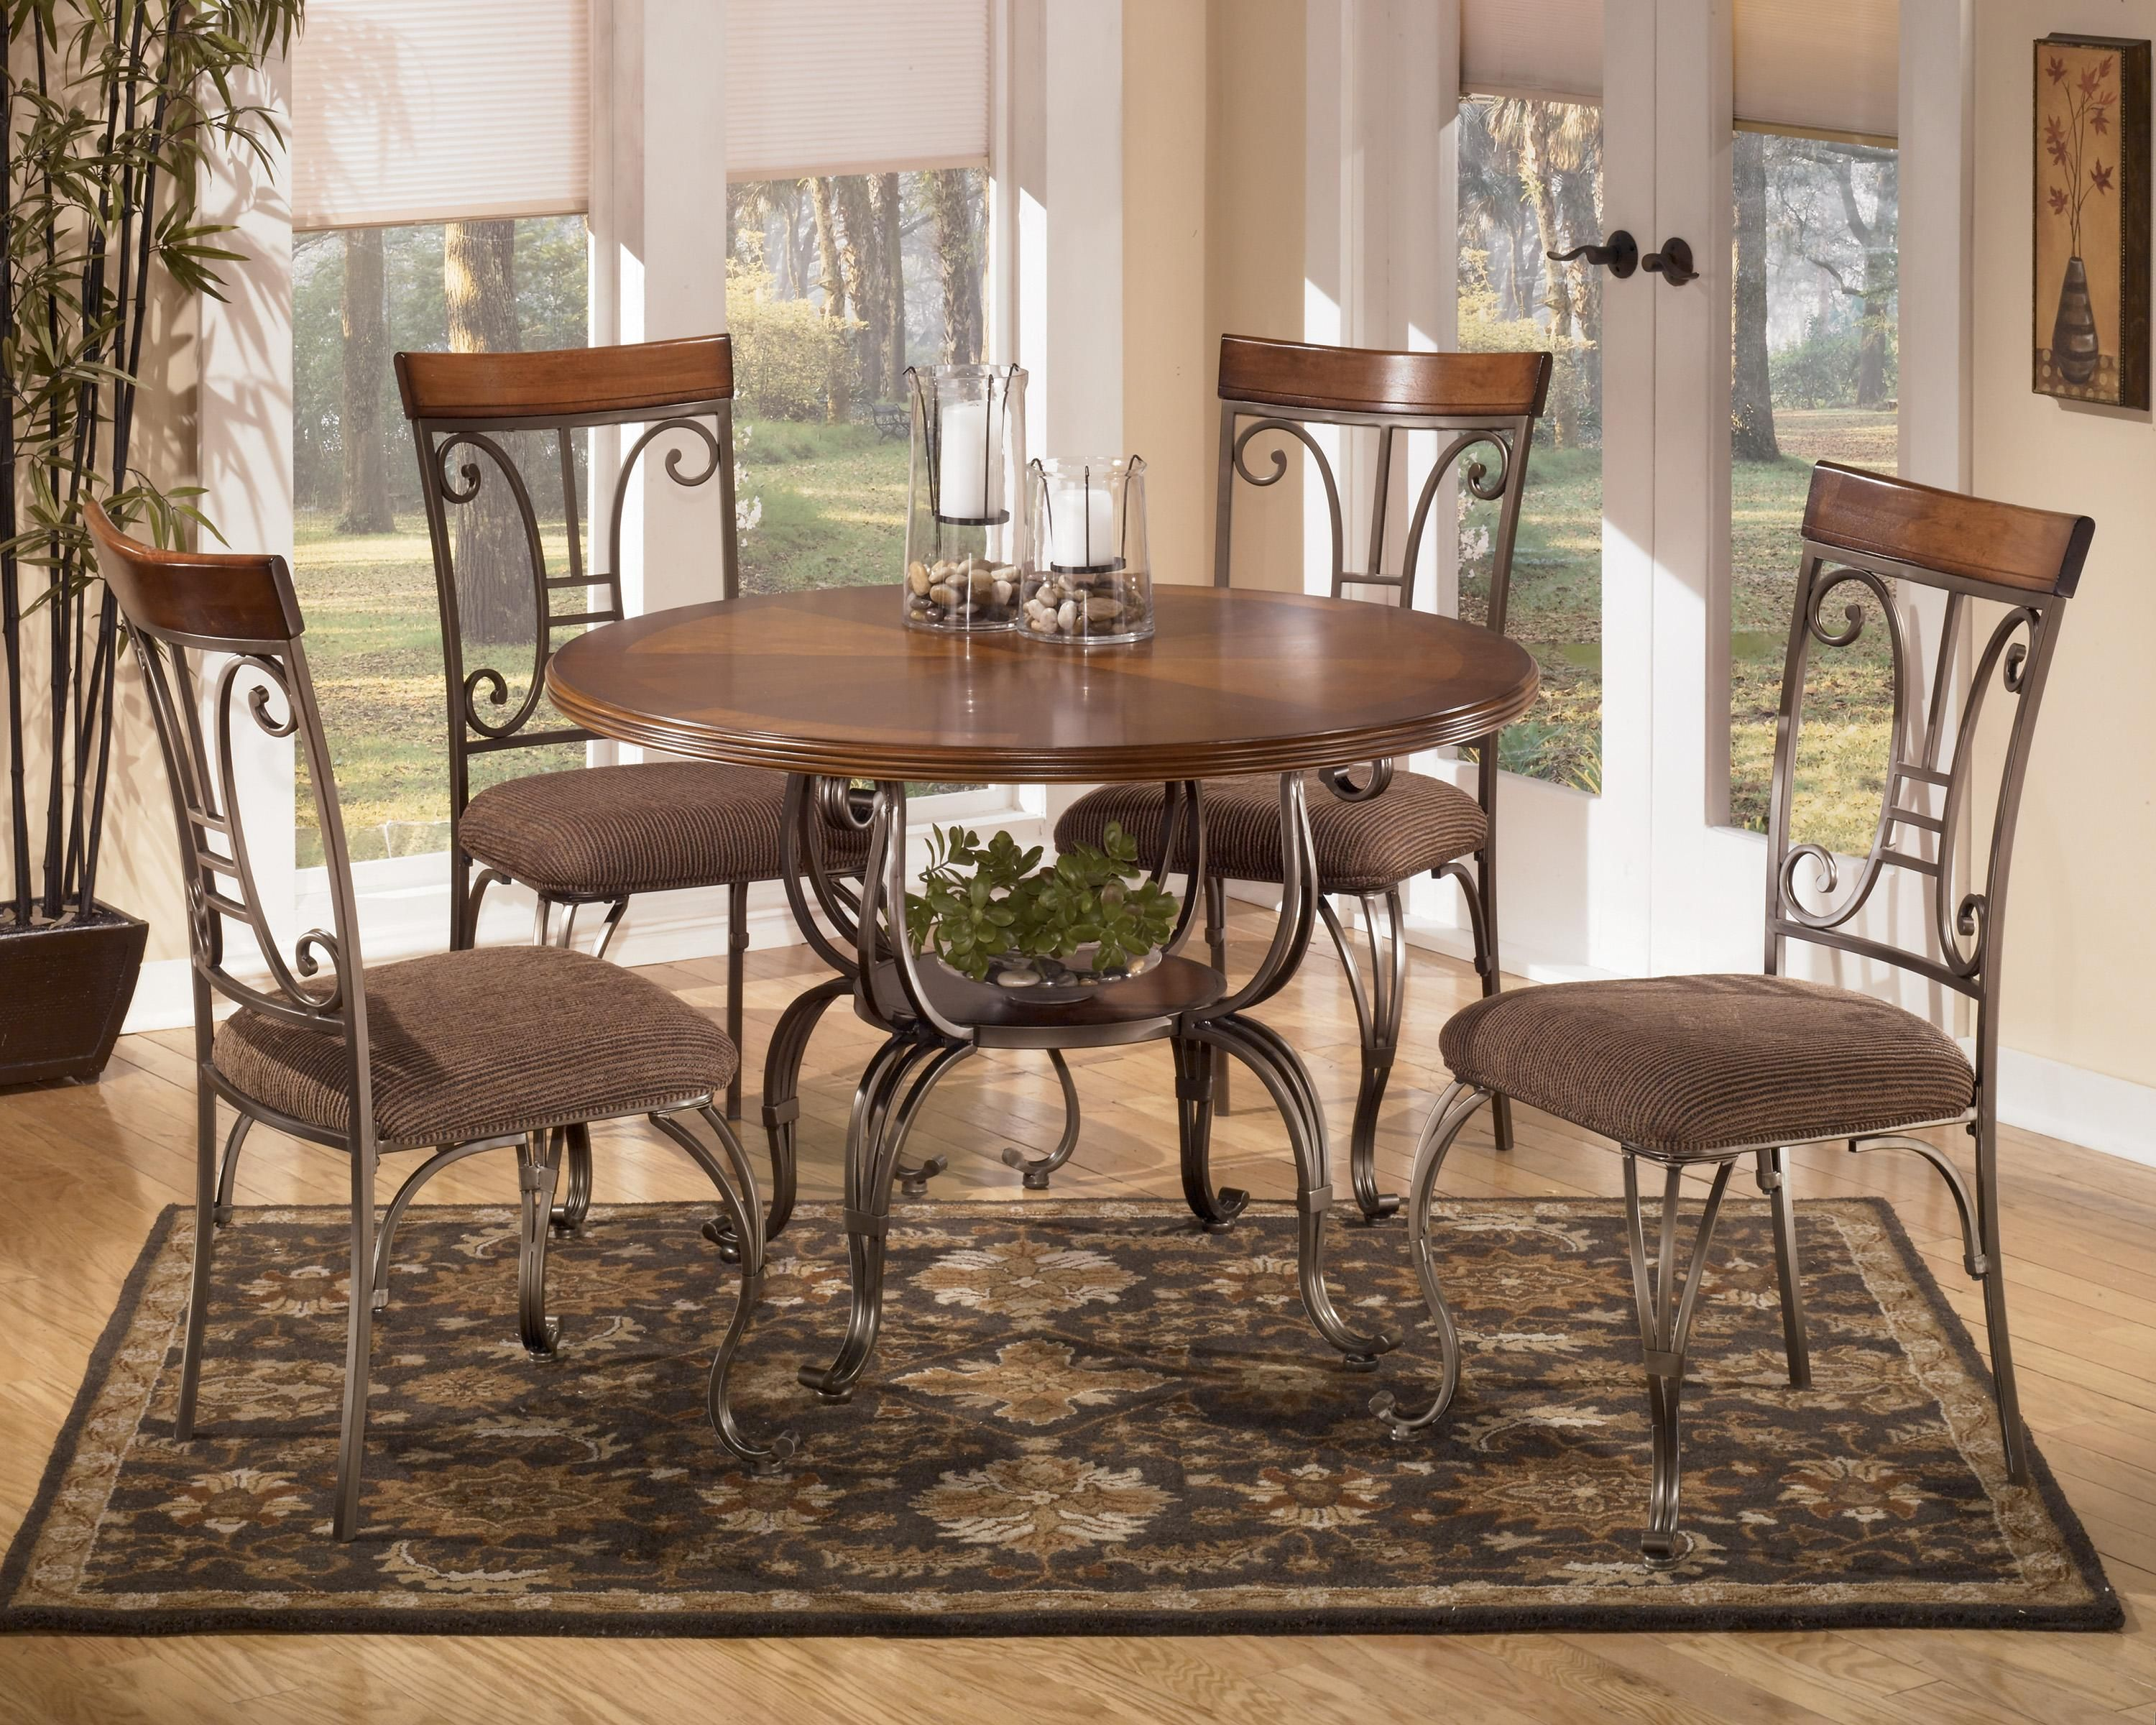 Ashley Furniture Kitchen Plentywood 5 Piece Round Dining Table Set By Signature Design By